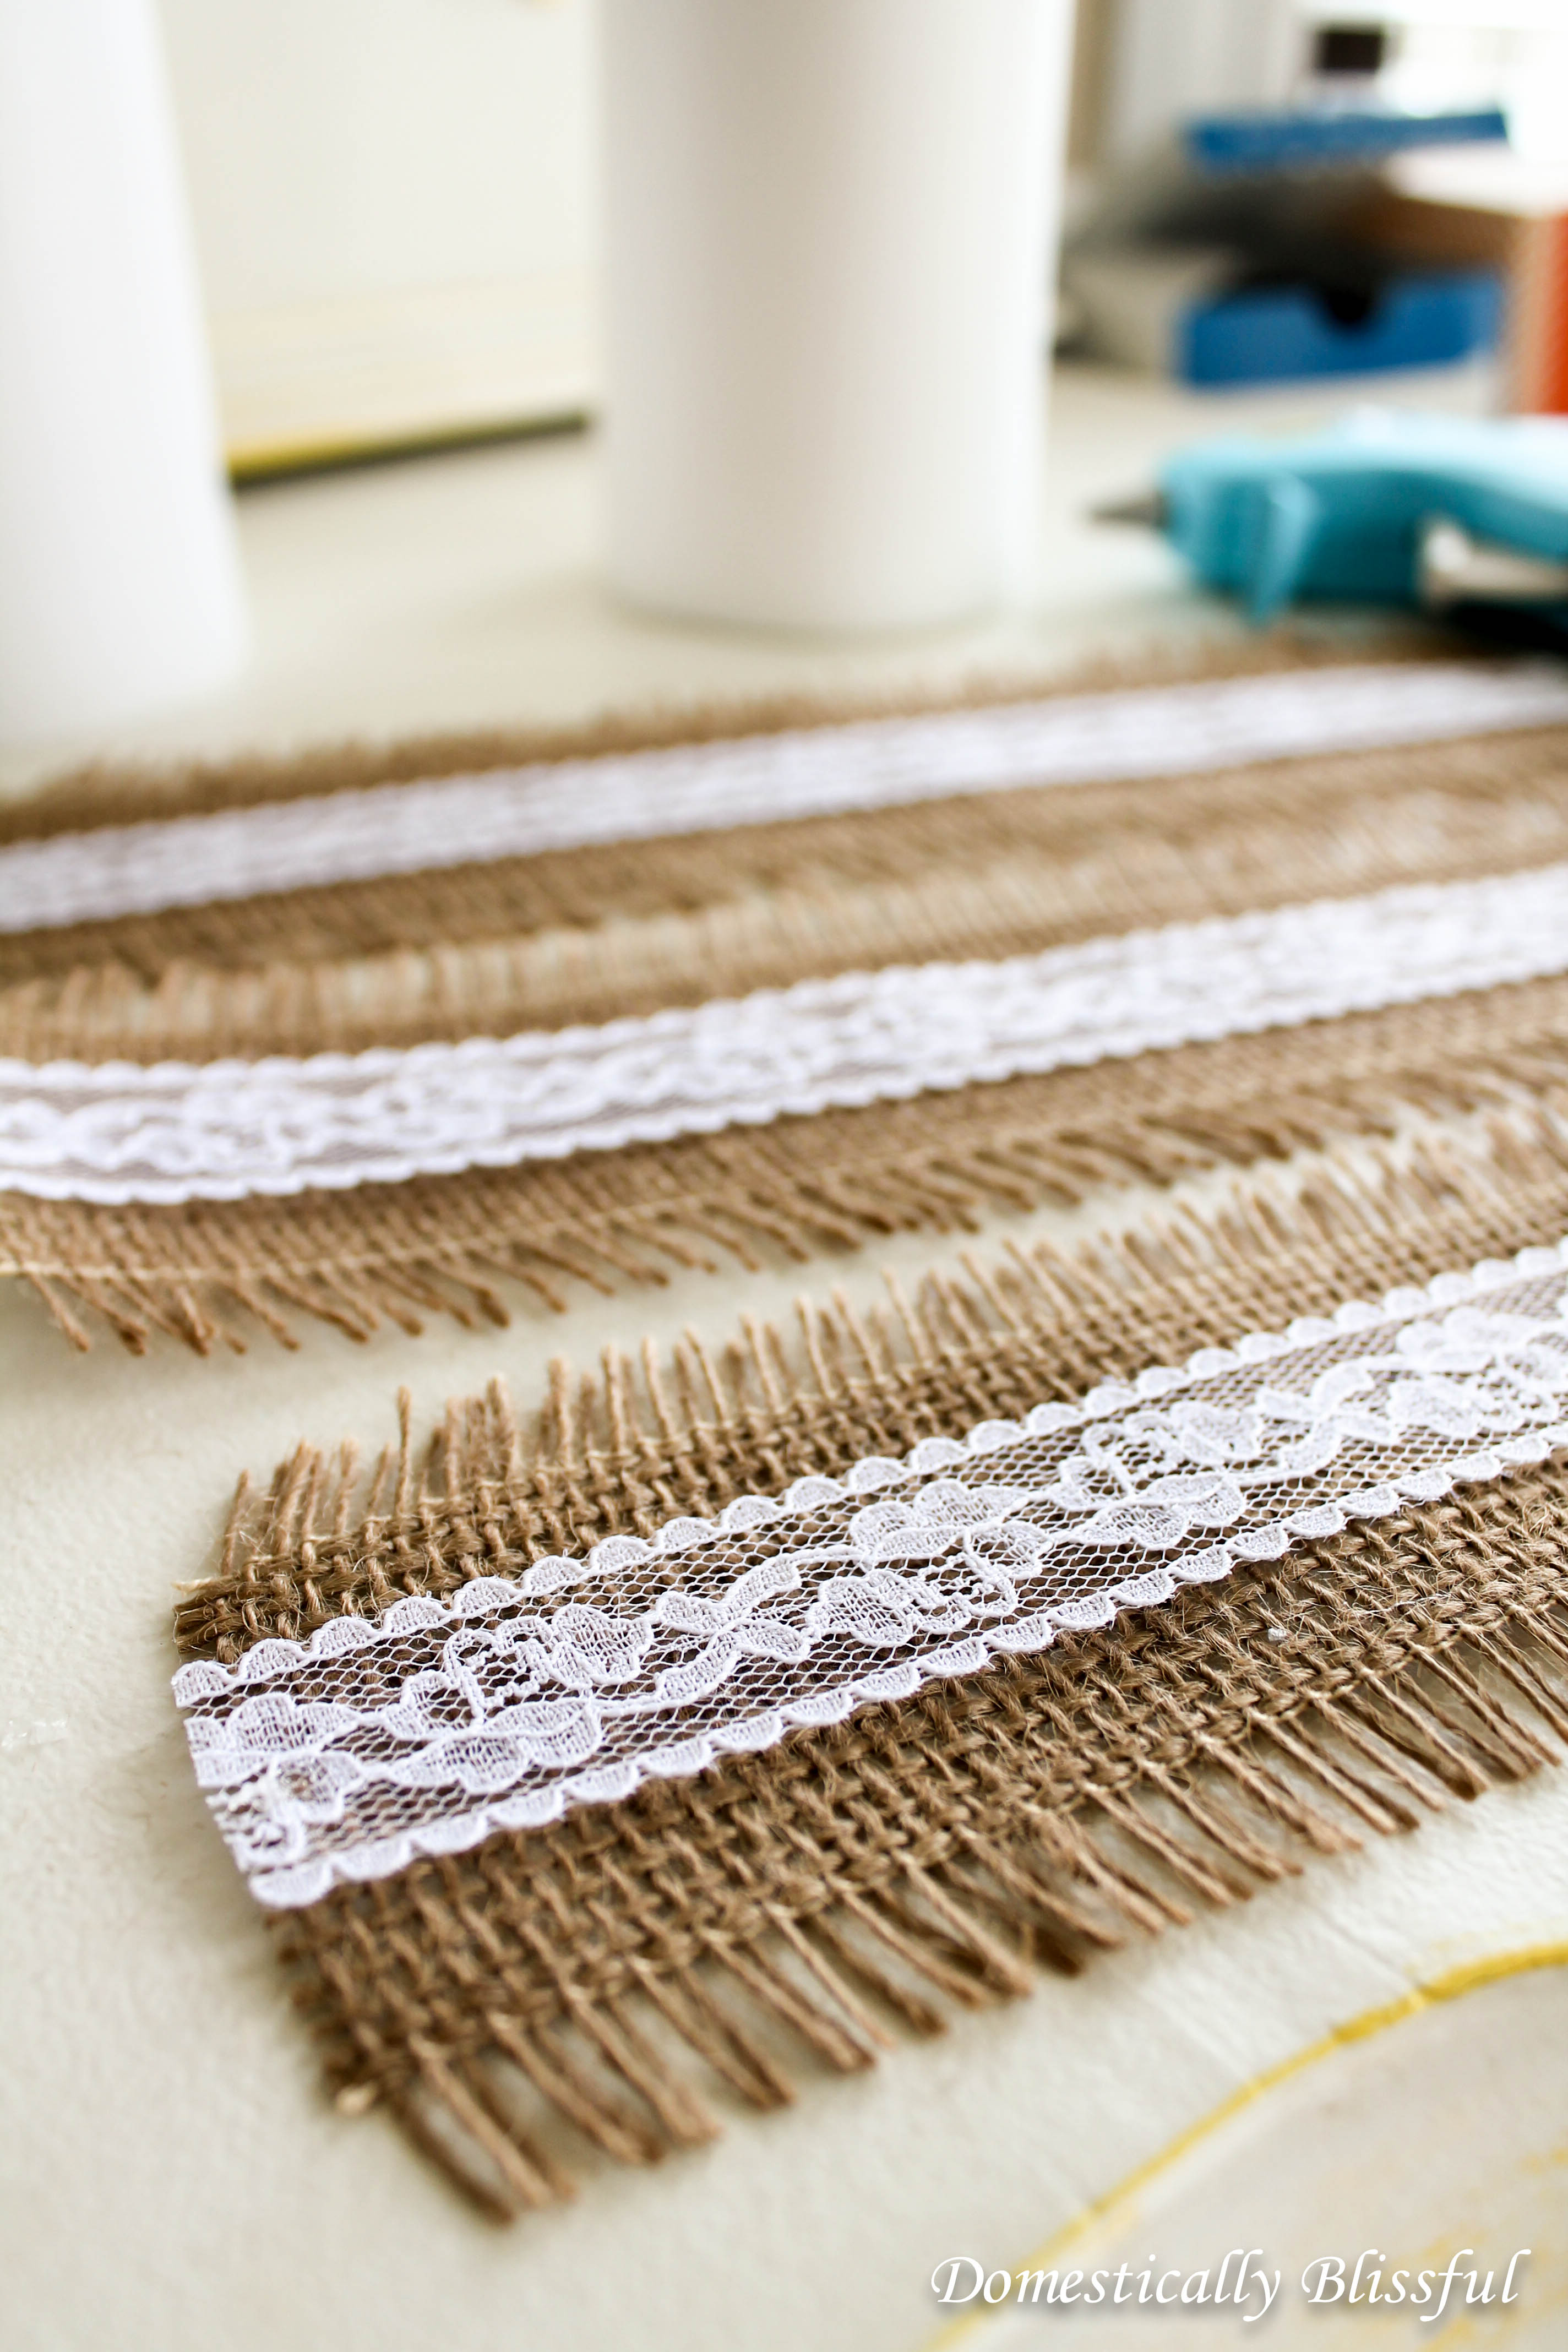 Cut and Glue the Burlap and Lace